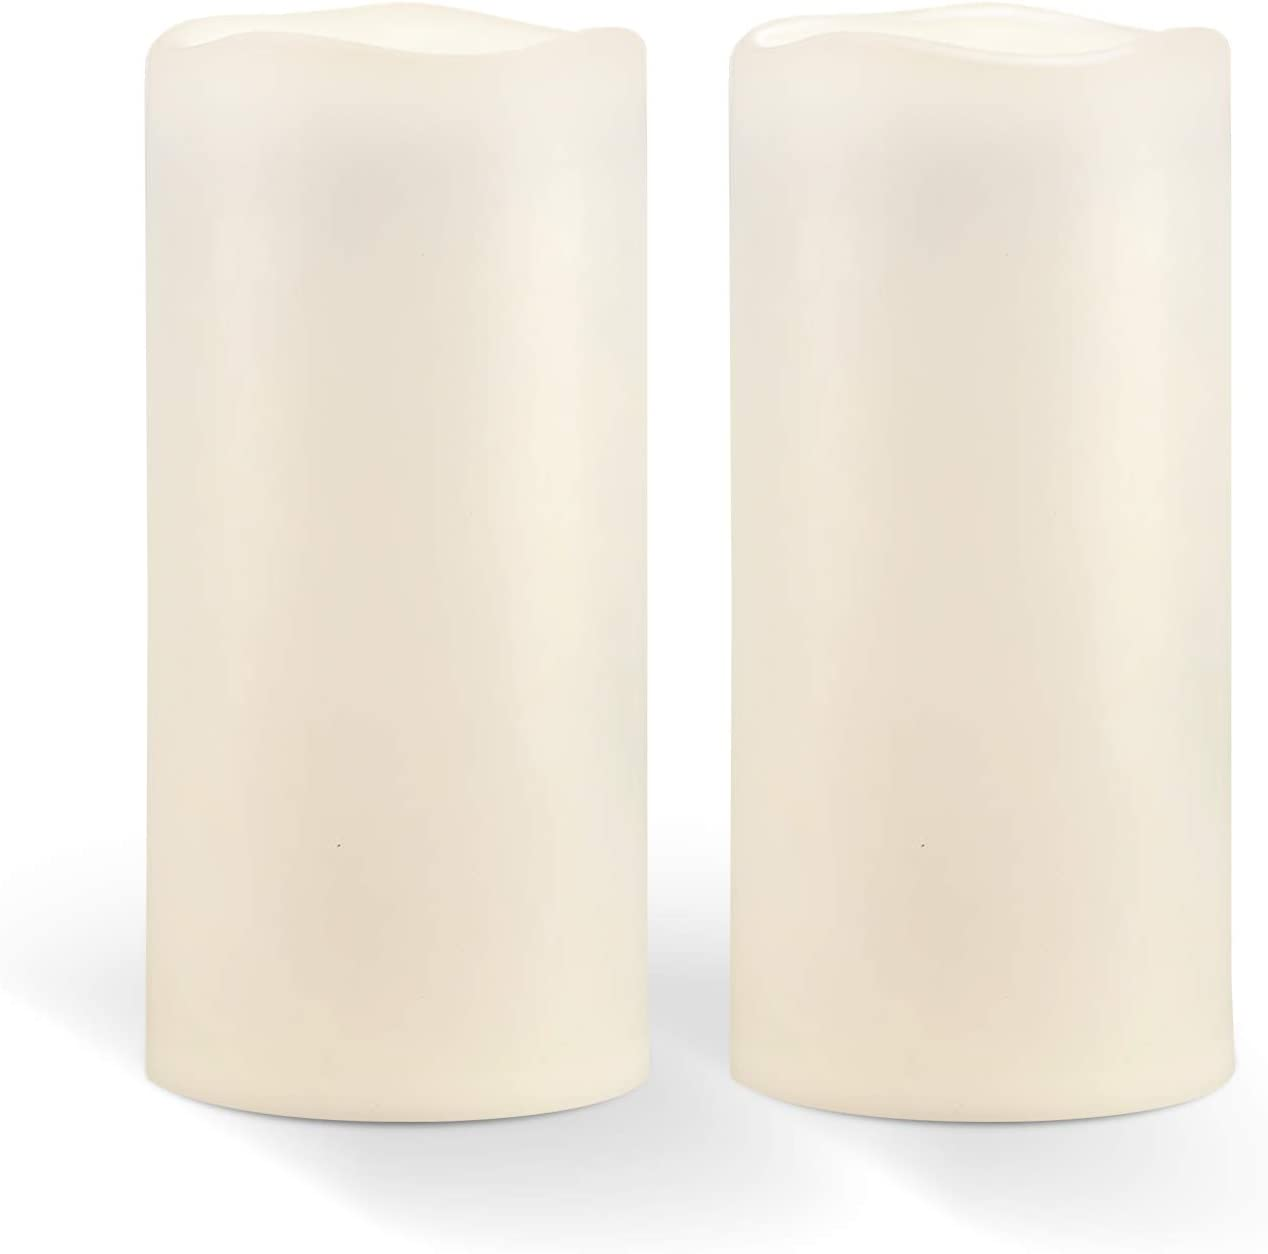 "Homemory 8"" x 4"" Waterproof Outdoor Flameless Candles - Battery Operated Flickering LED Pillar Candles for Indoor Outdoor Lanterns, Long Lasting, Large, Set of 2"